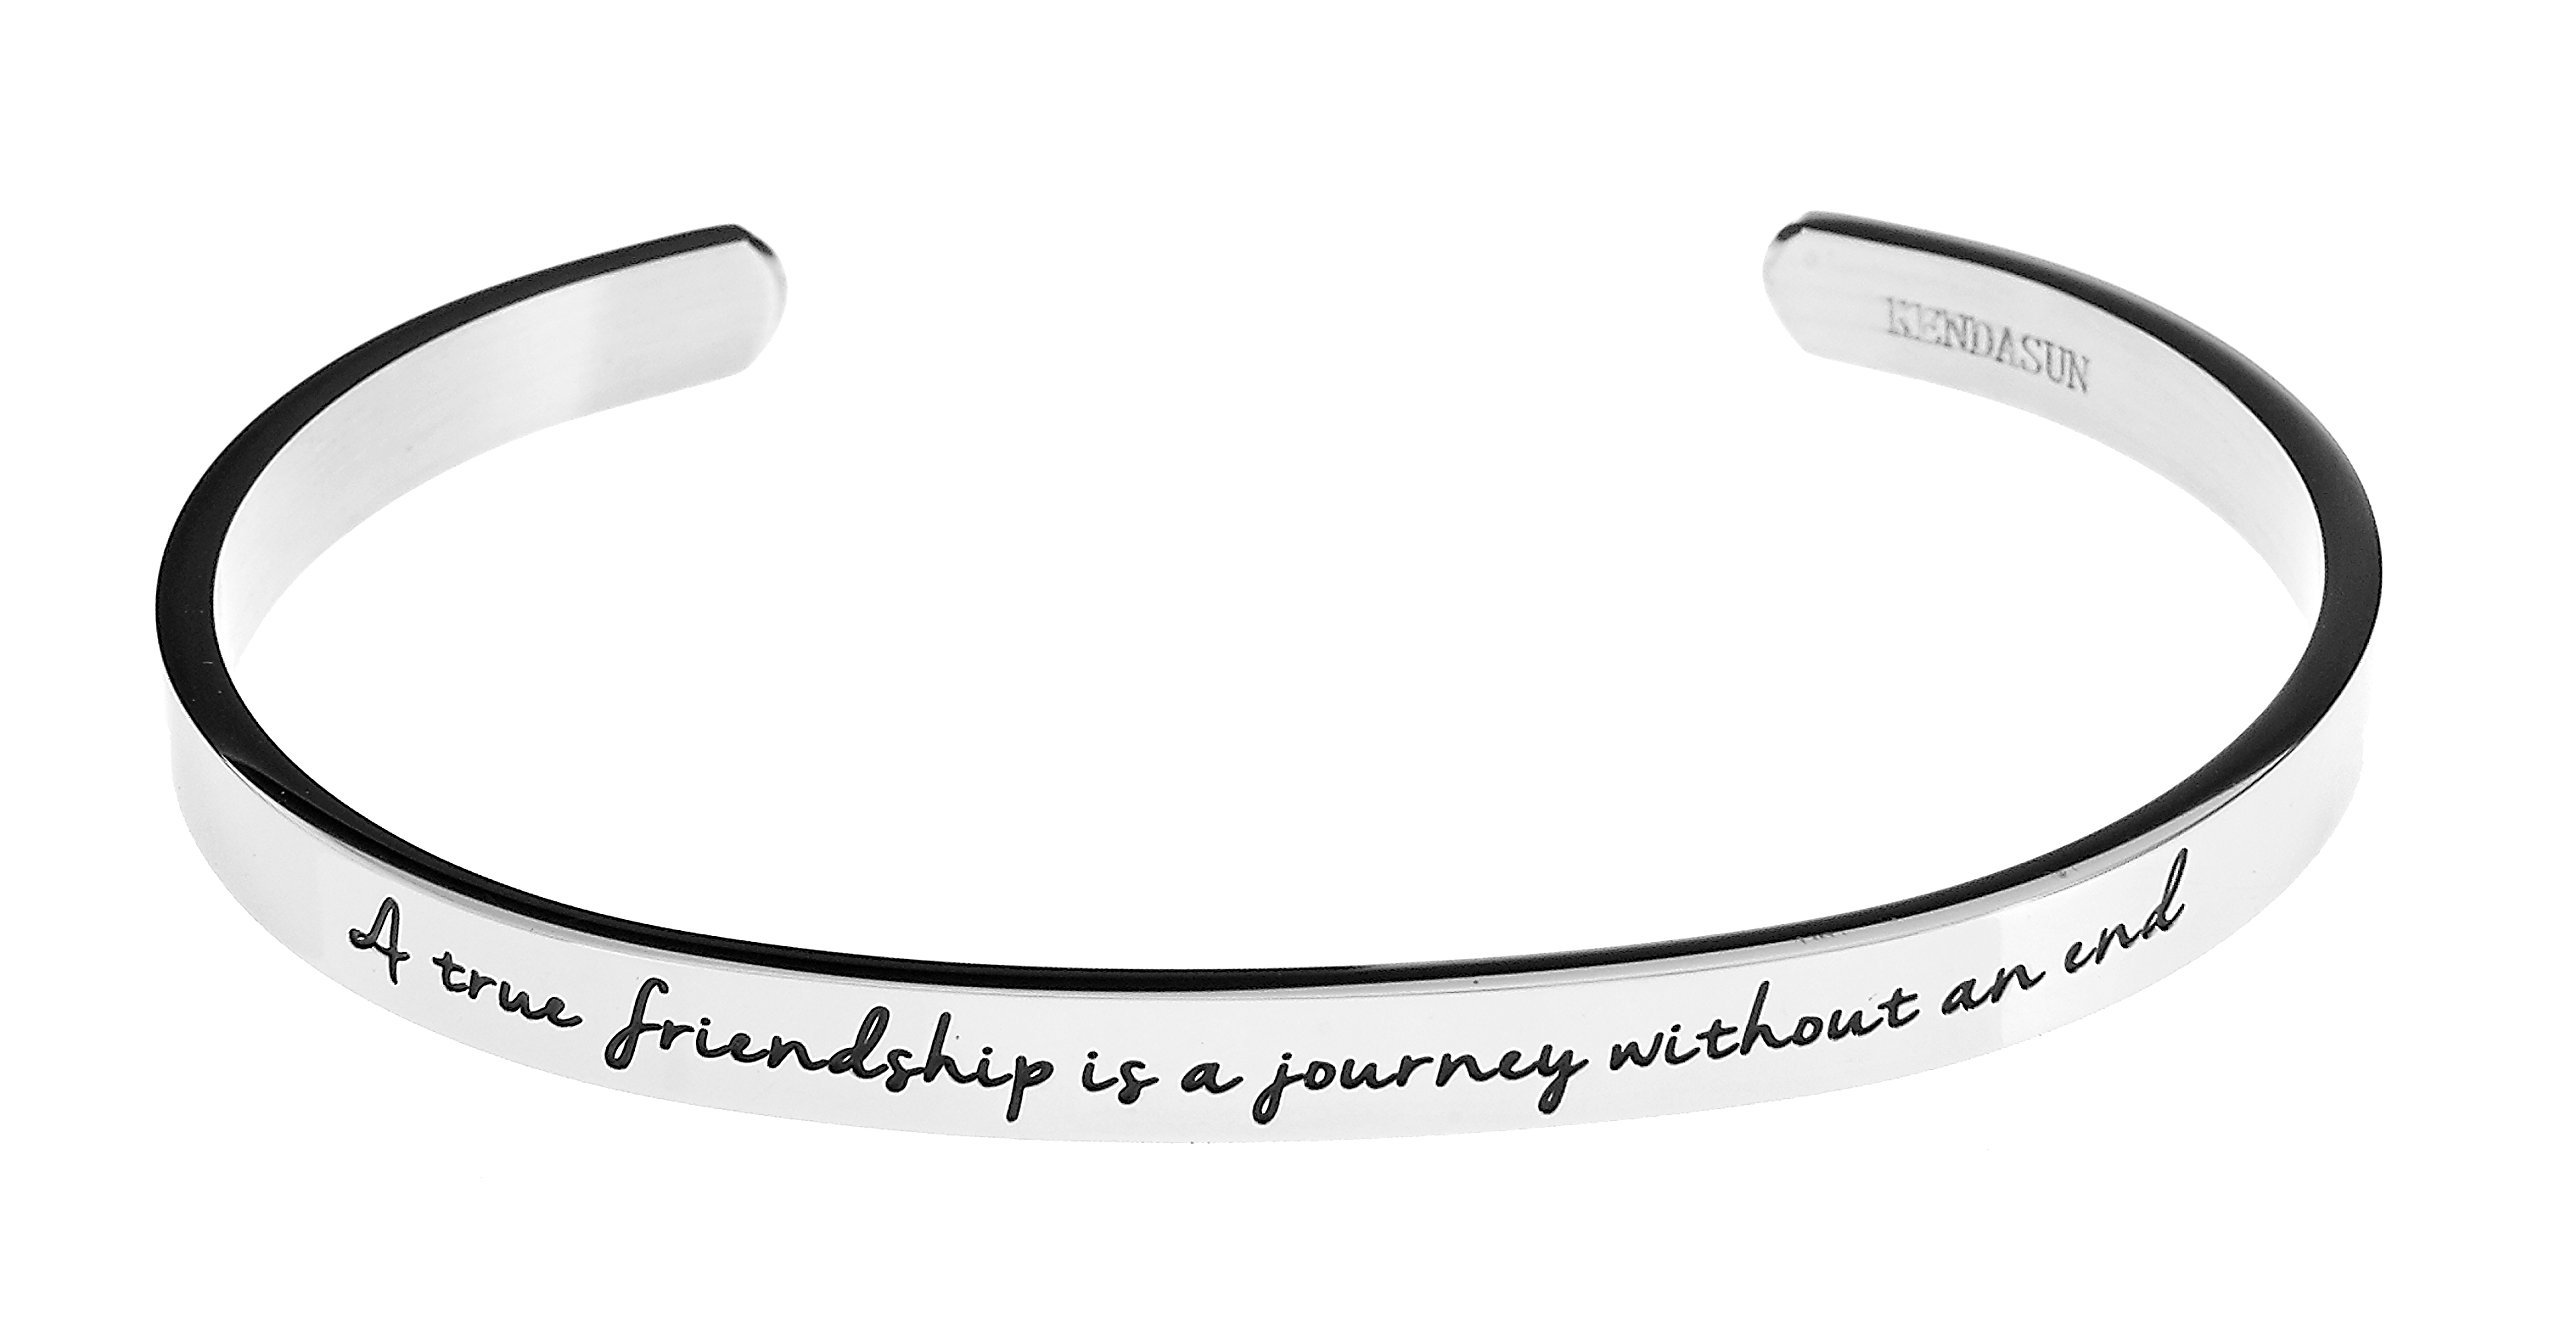 ''A true friendship is a journey without an end.'' Premium Stainless Steel Cuff Bangle Bracelet (White)